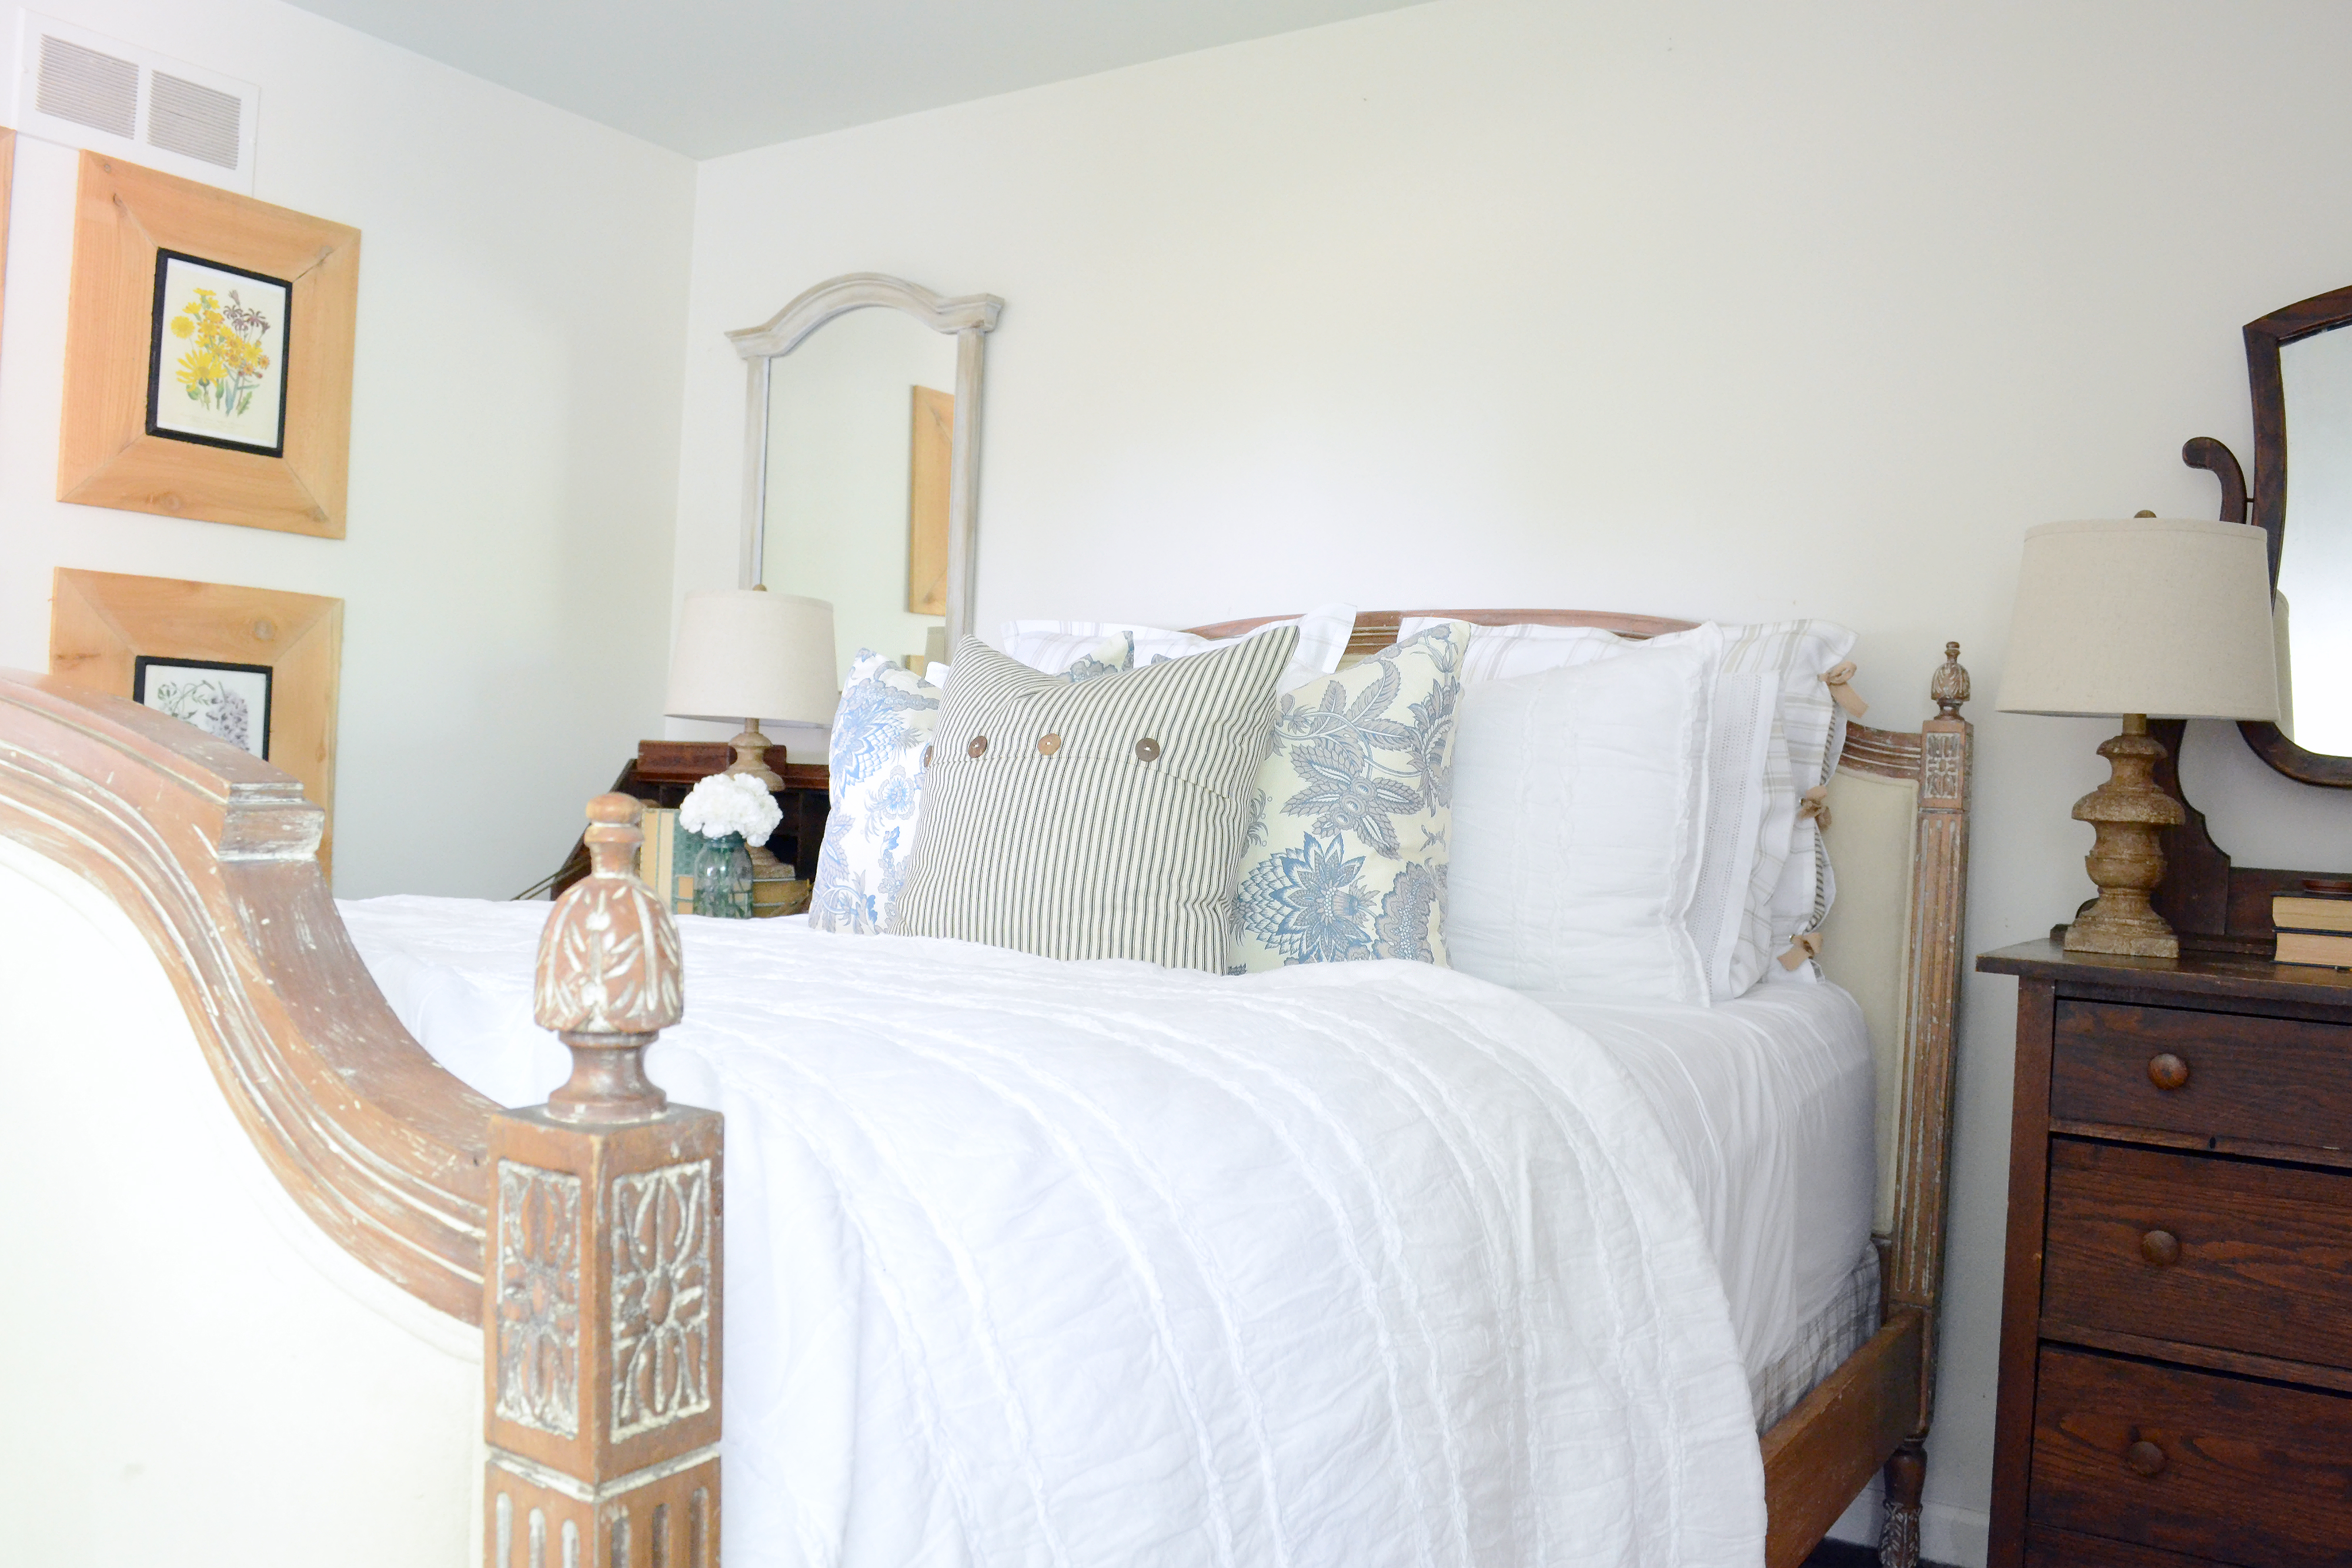 Farmhouse bedroom on a budget. Create a new space using old stuff